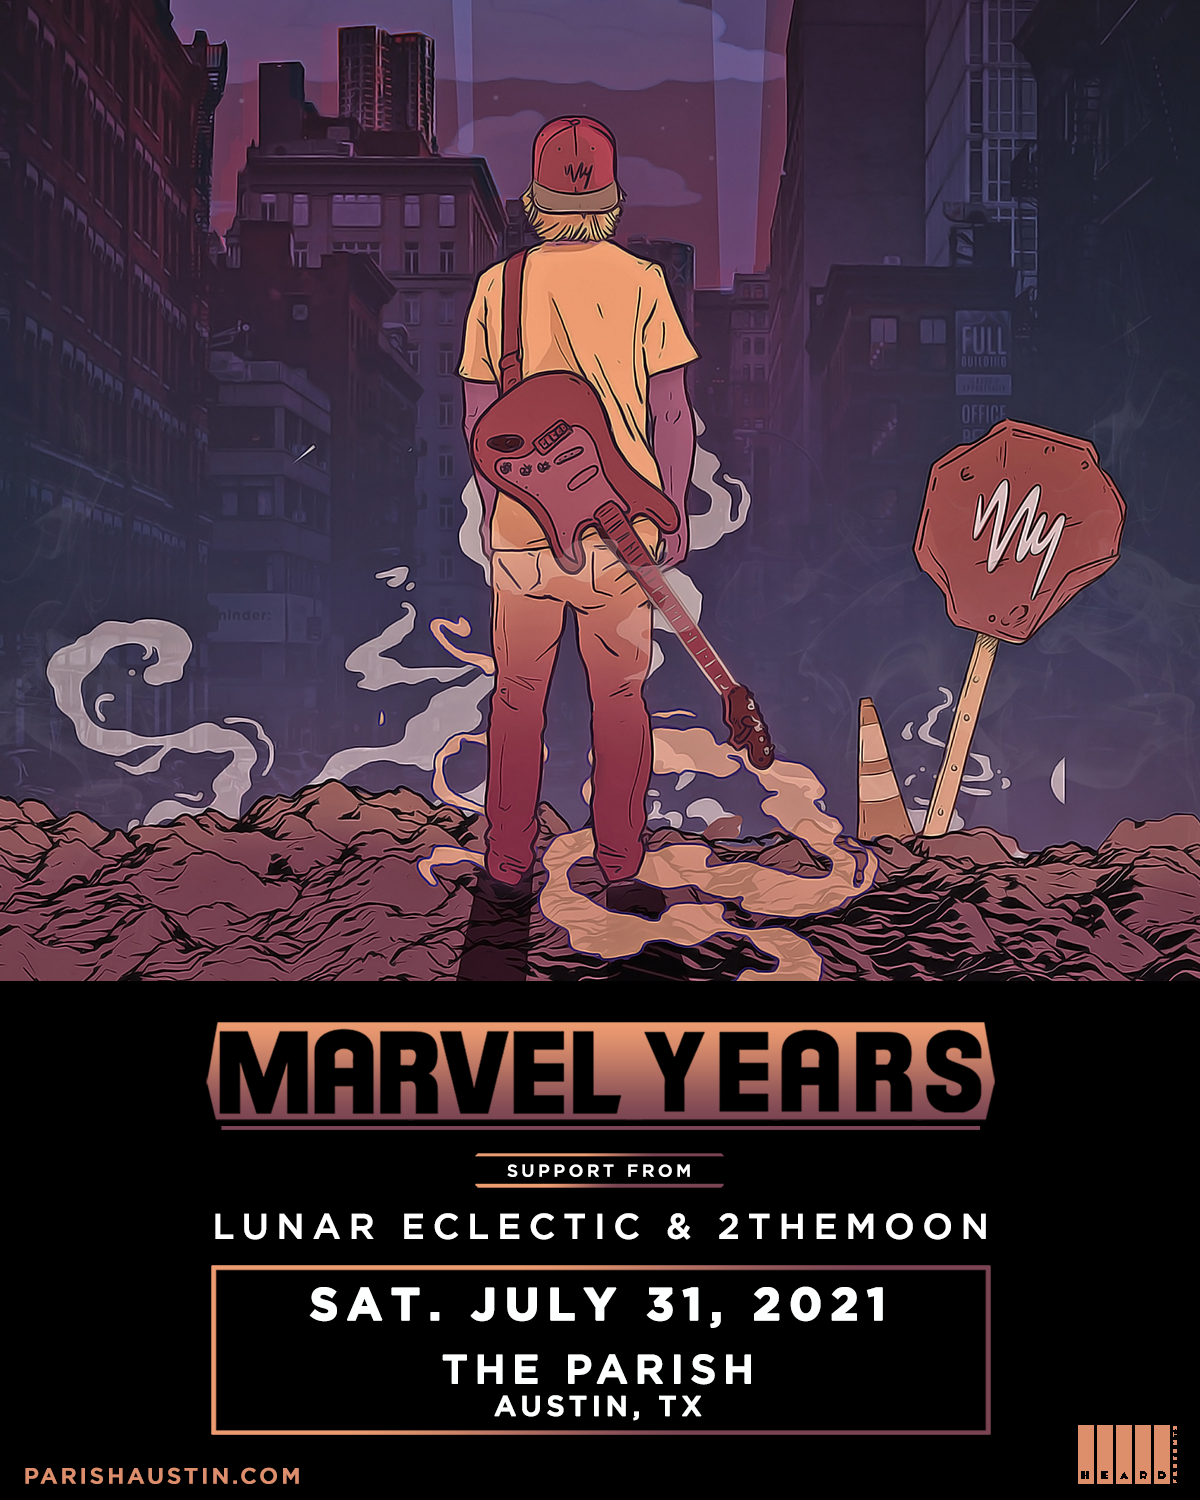 Marvel Years w/ Lunar Eclectic and 2TheMoon: